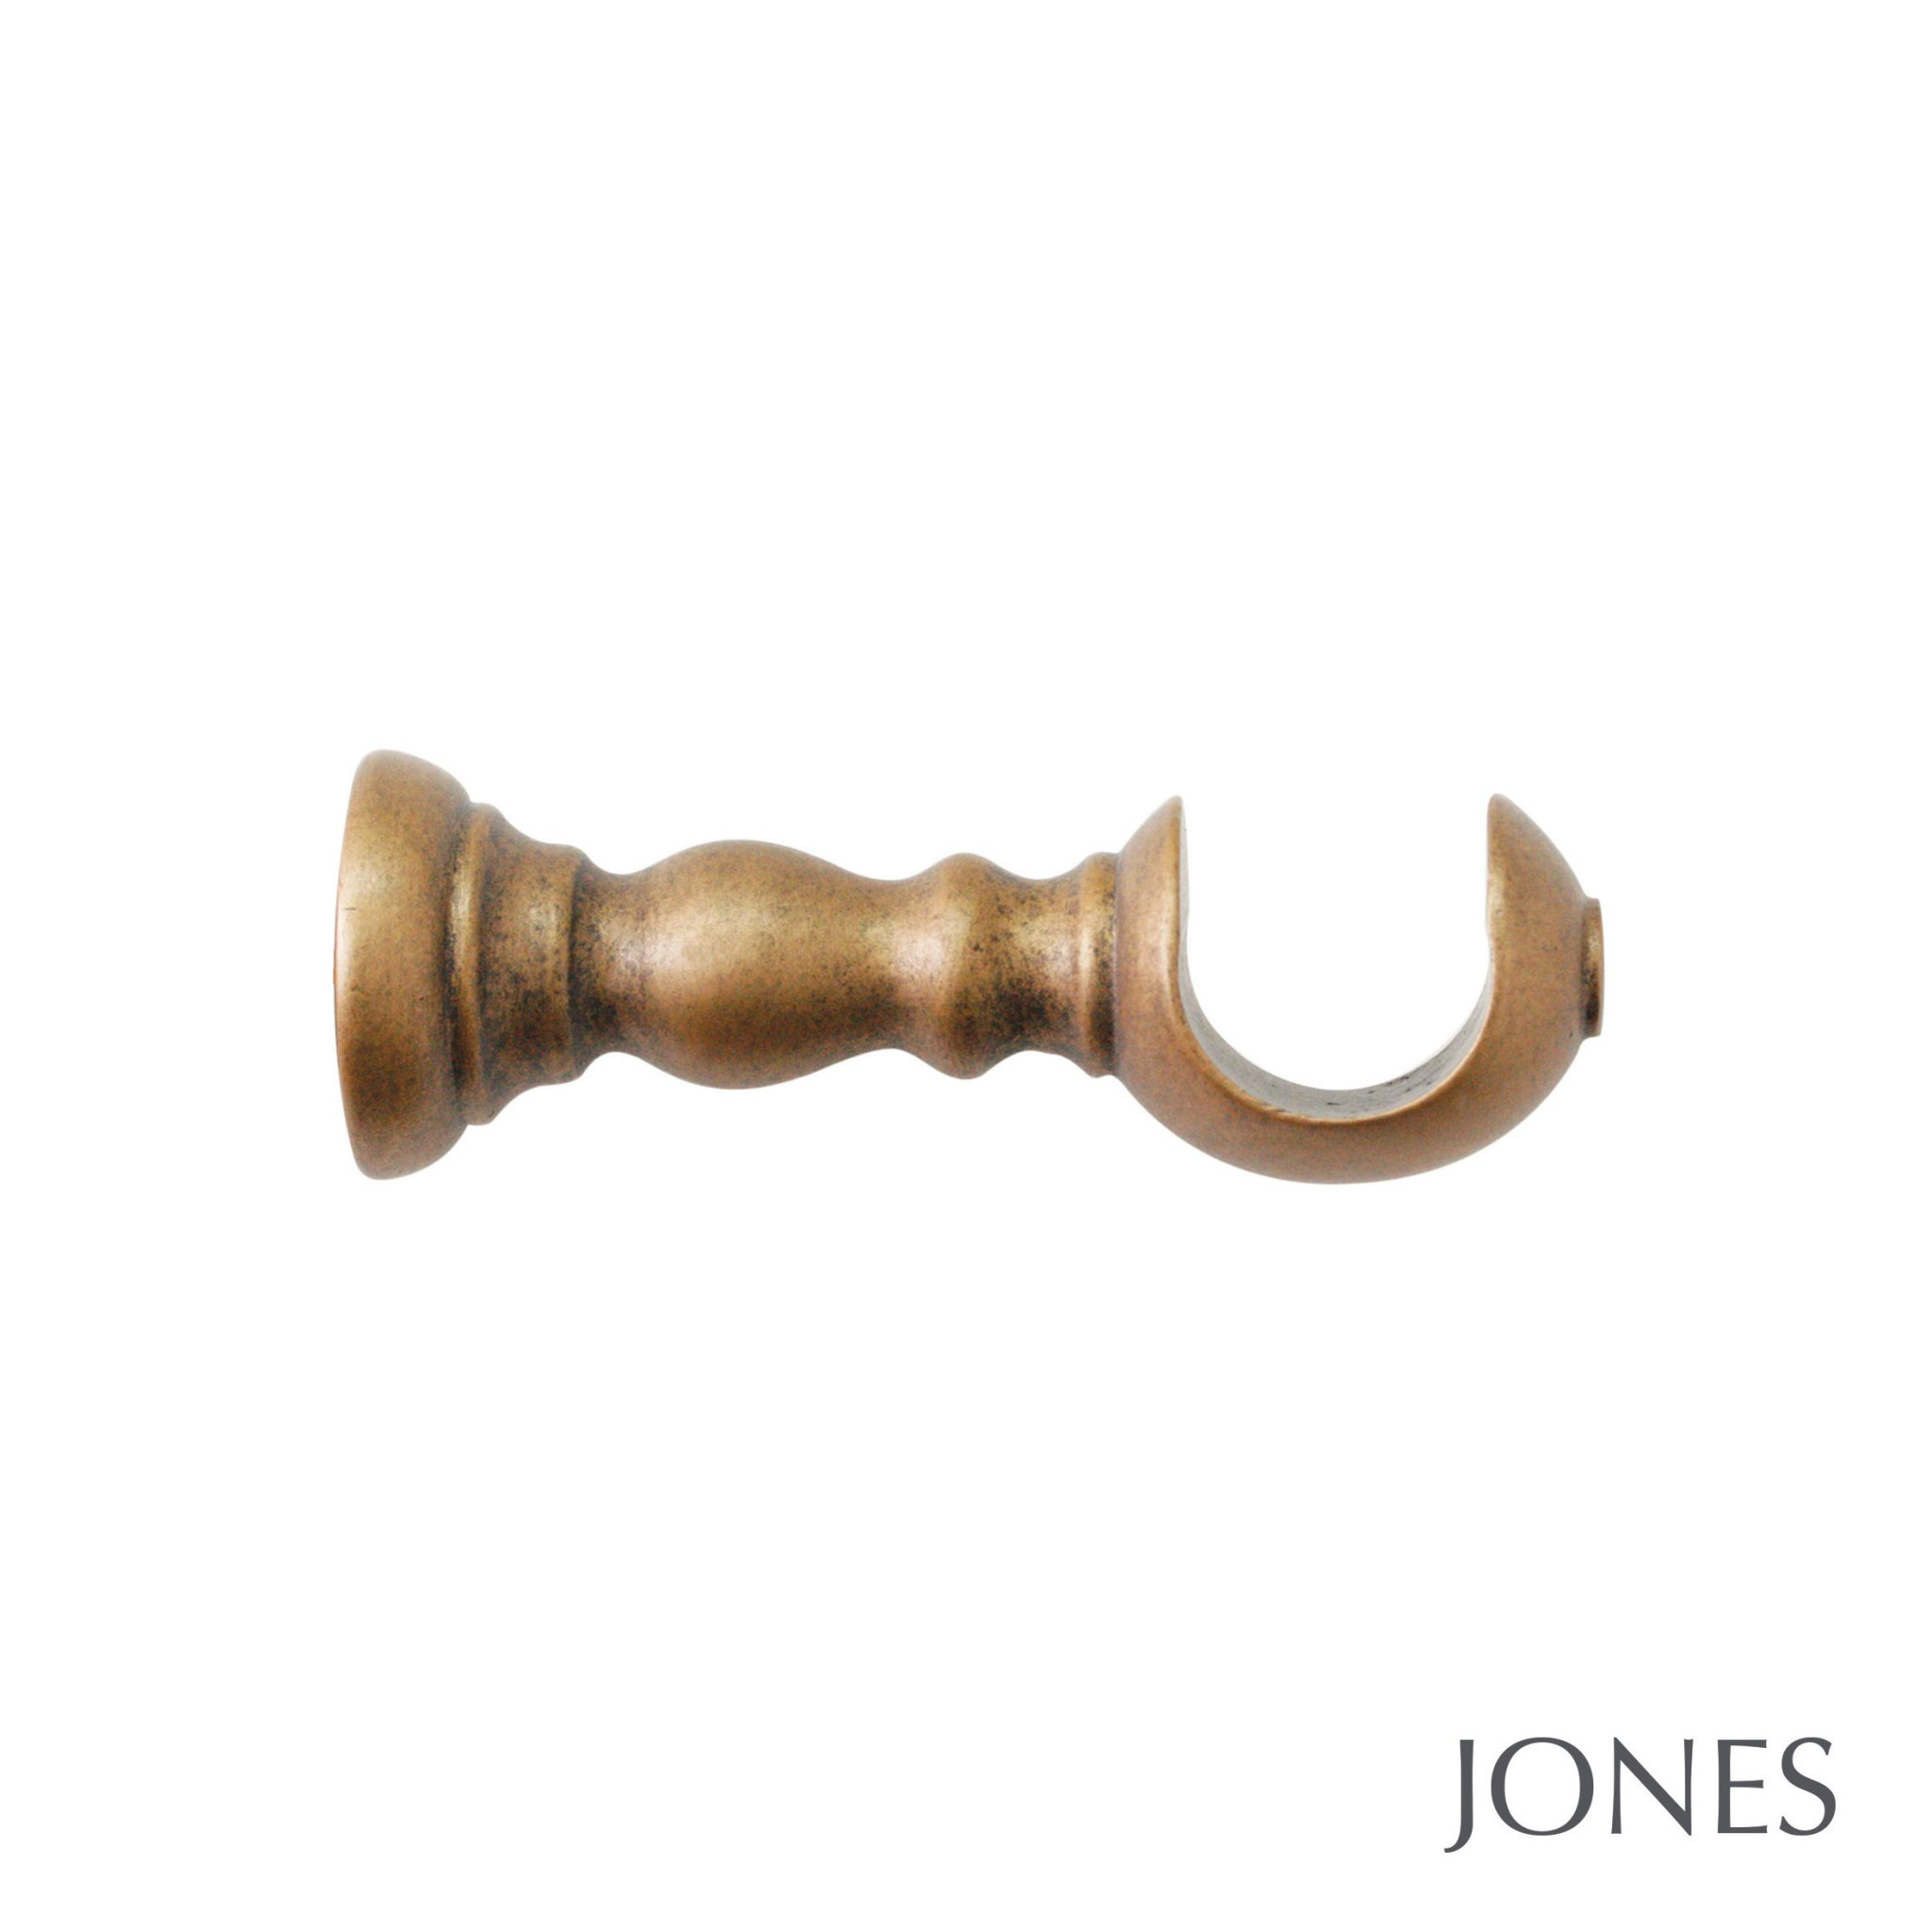 Jones Florentine Handcrafted 50mm Extension Brackets